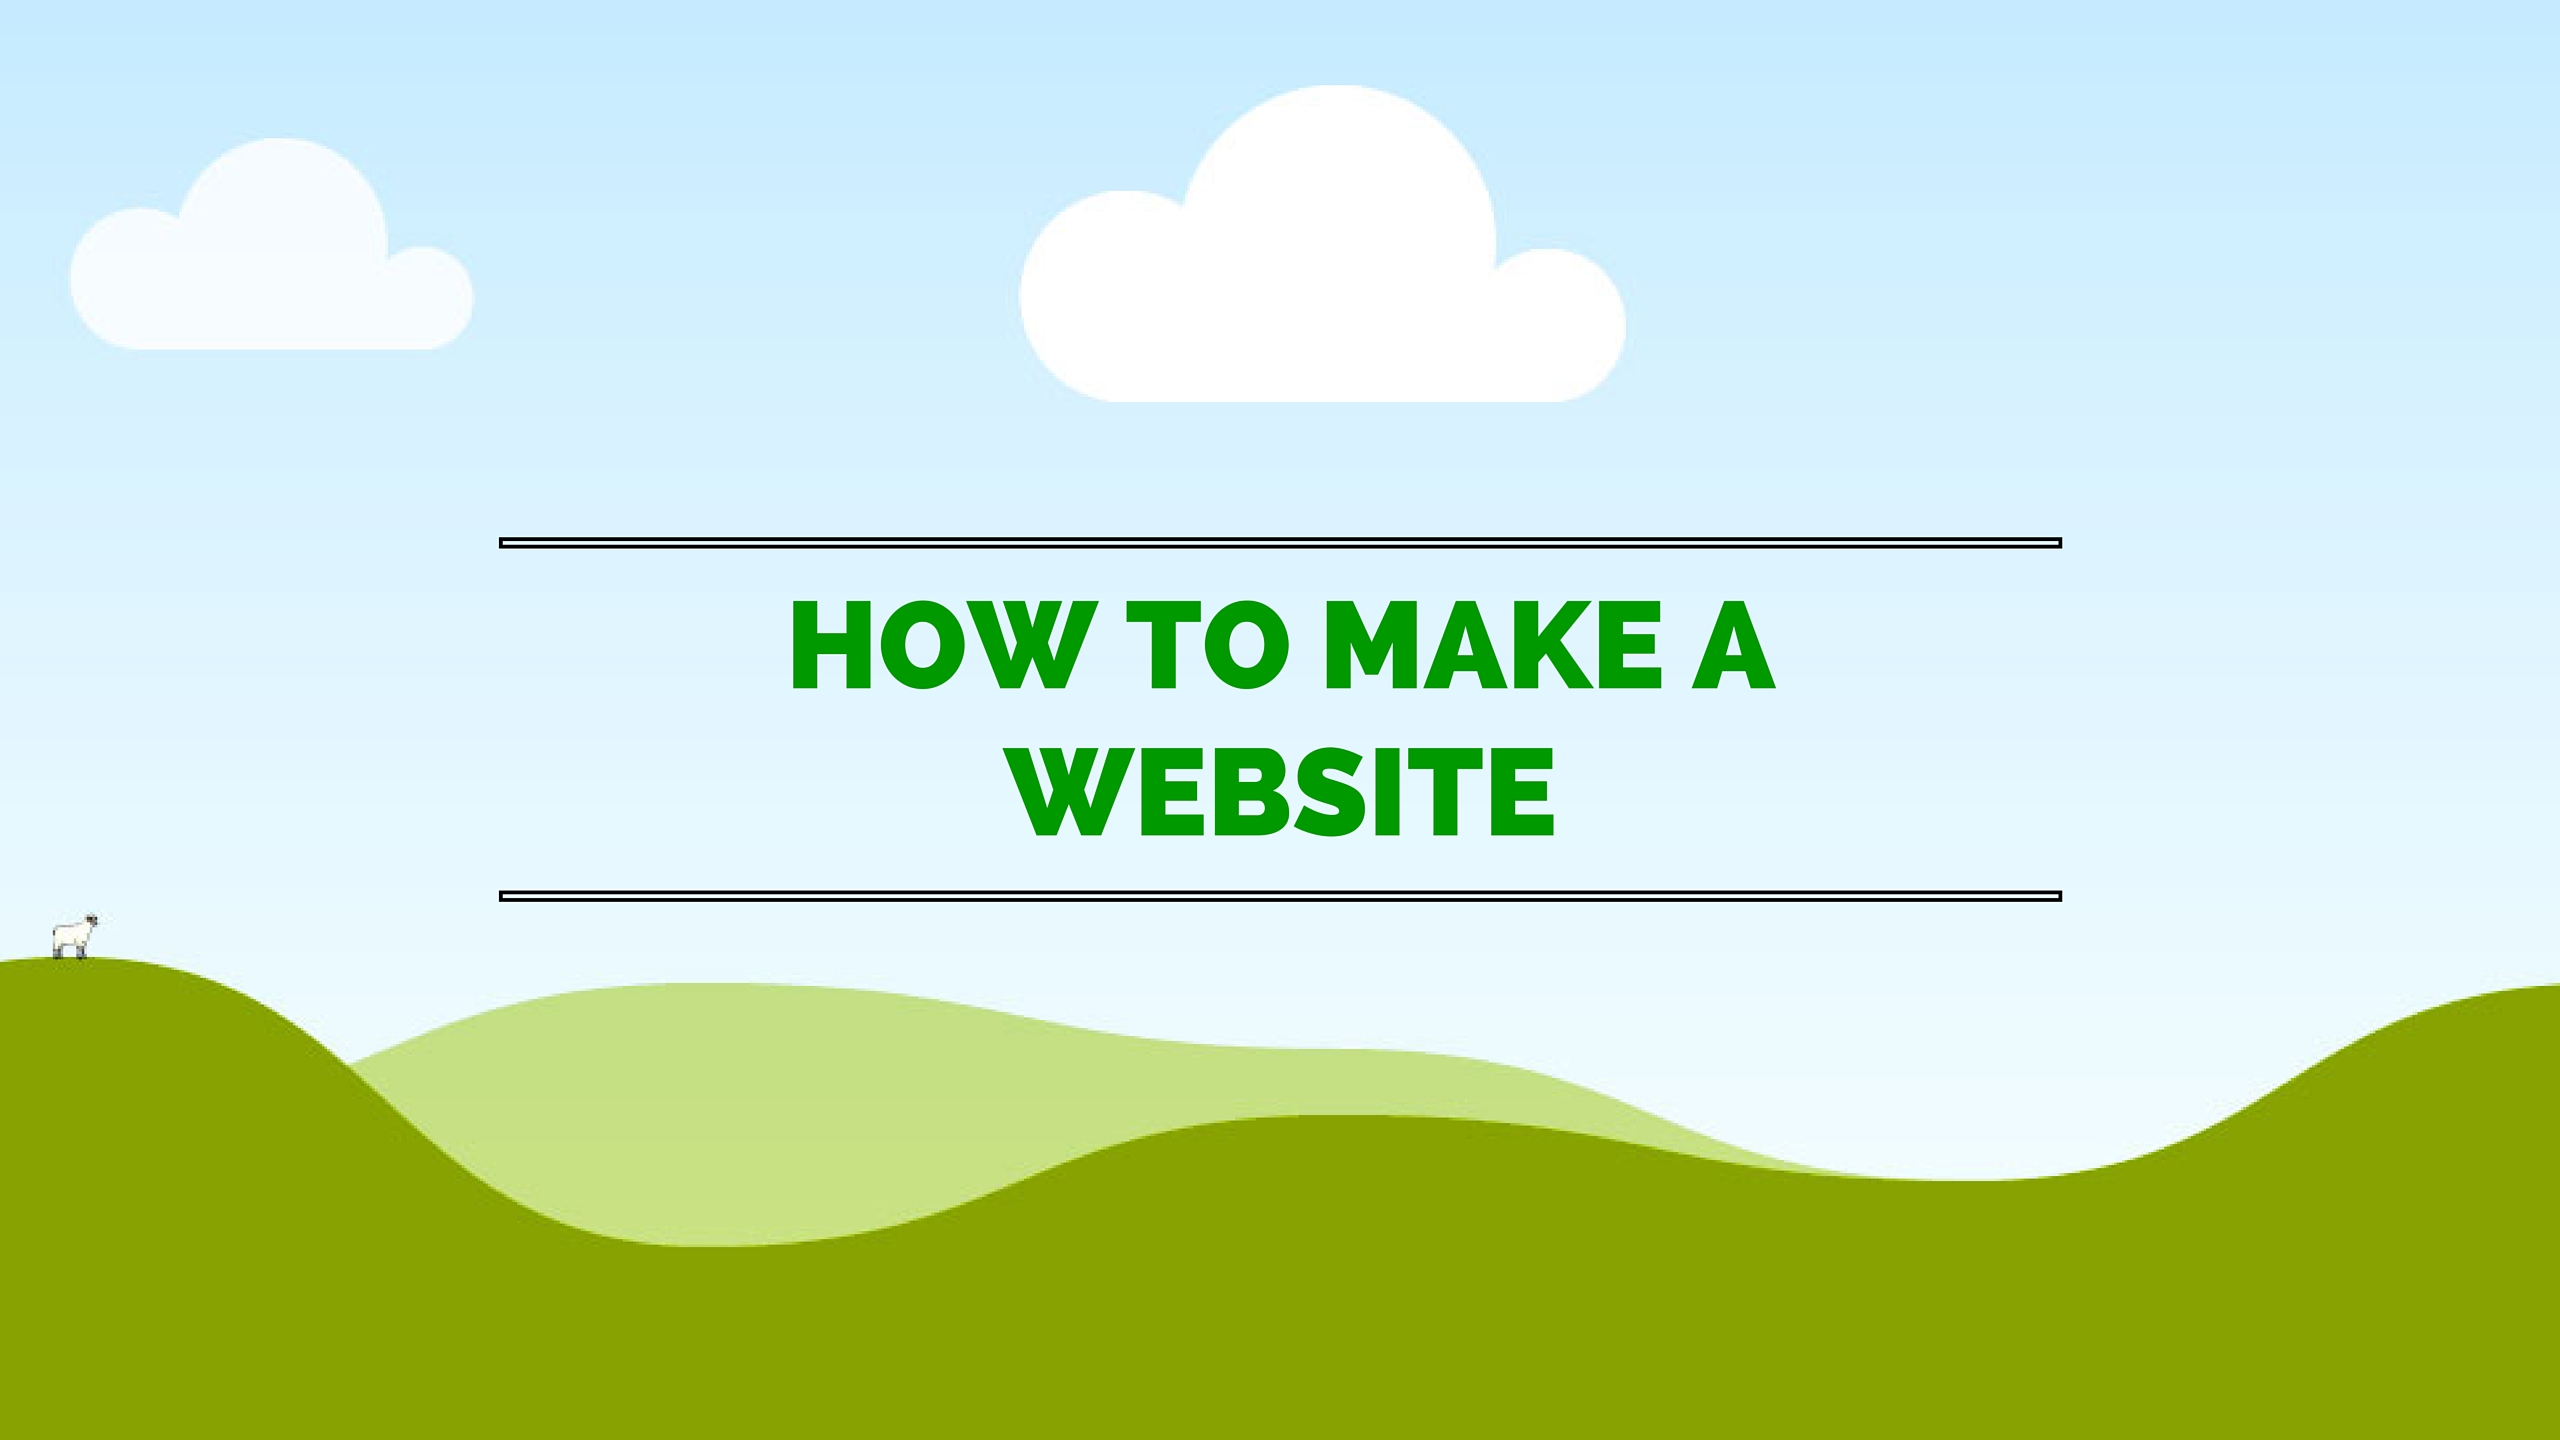 How to make a website